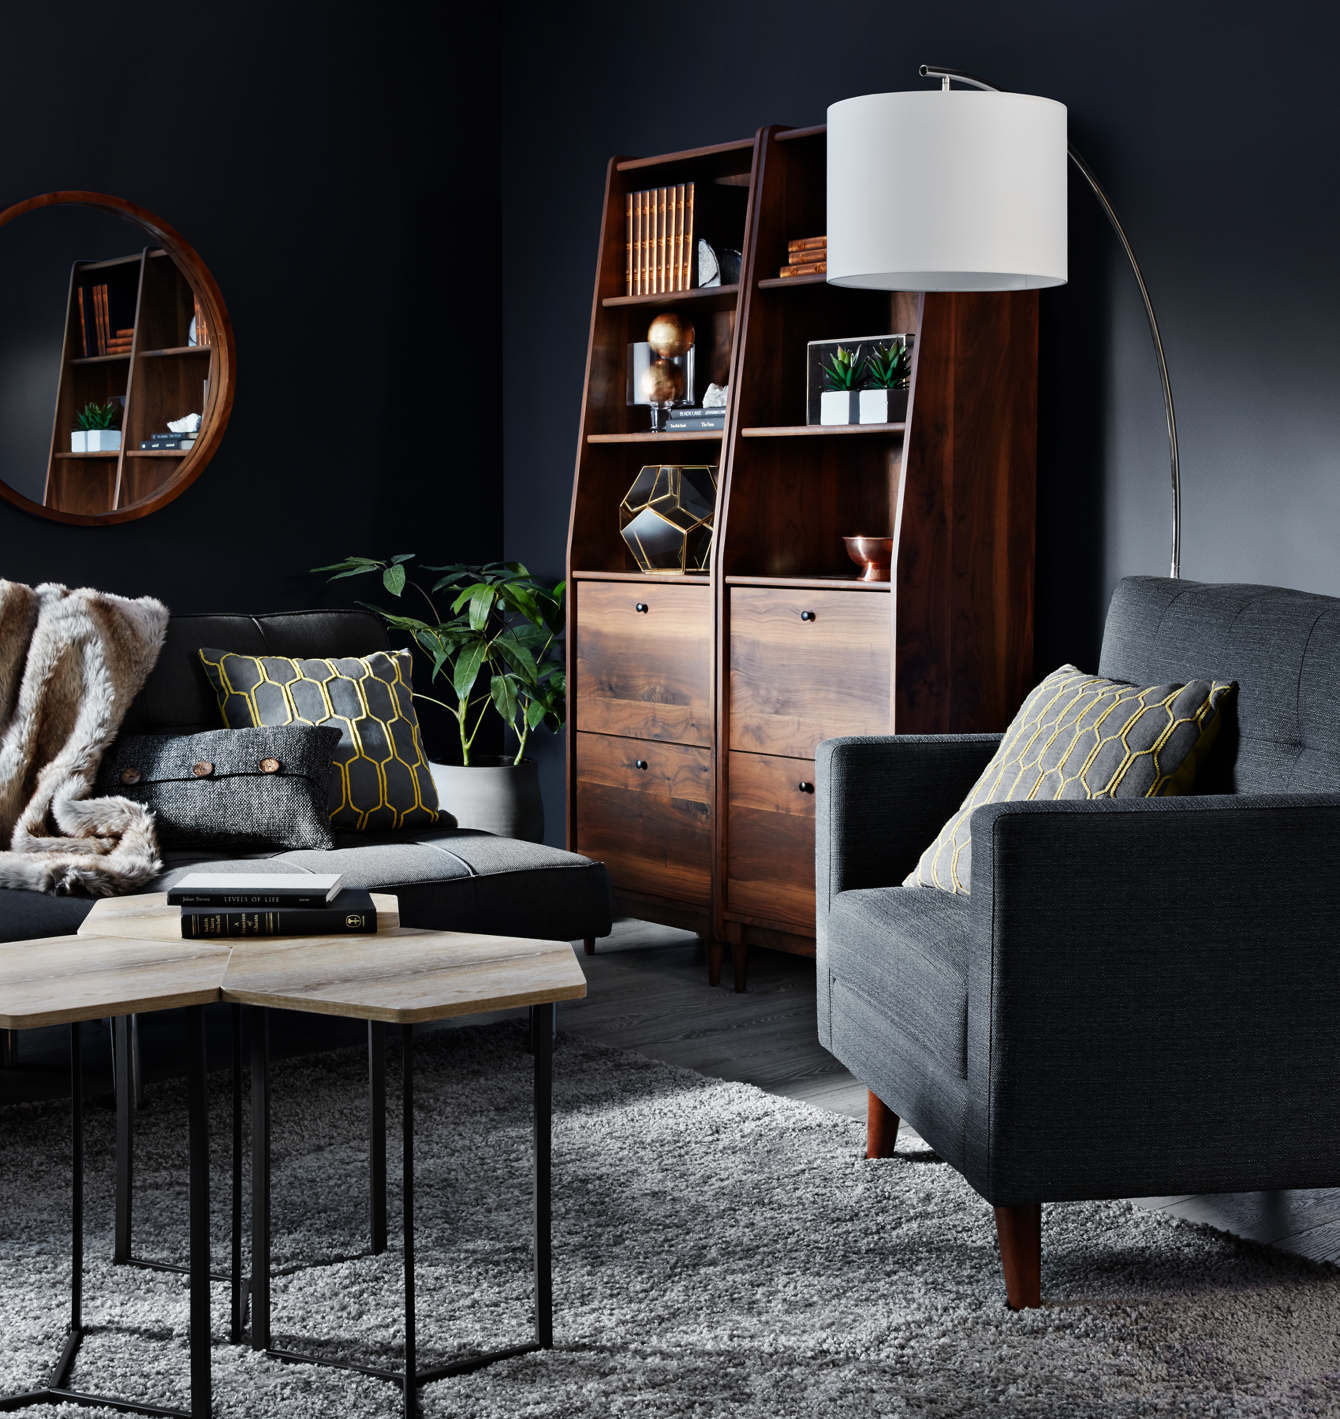 Canadian Tire - Wow guide - interiors - James Tse Photography